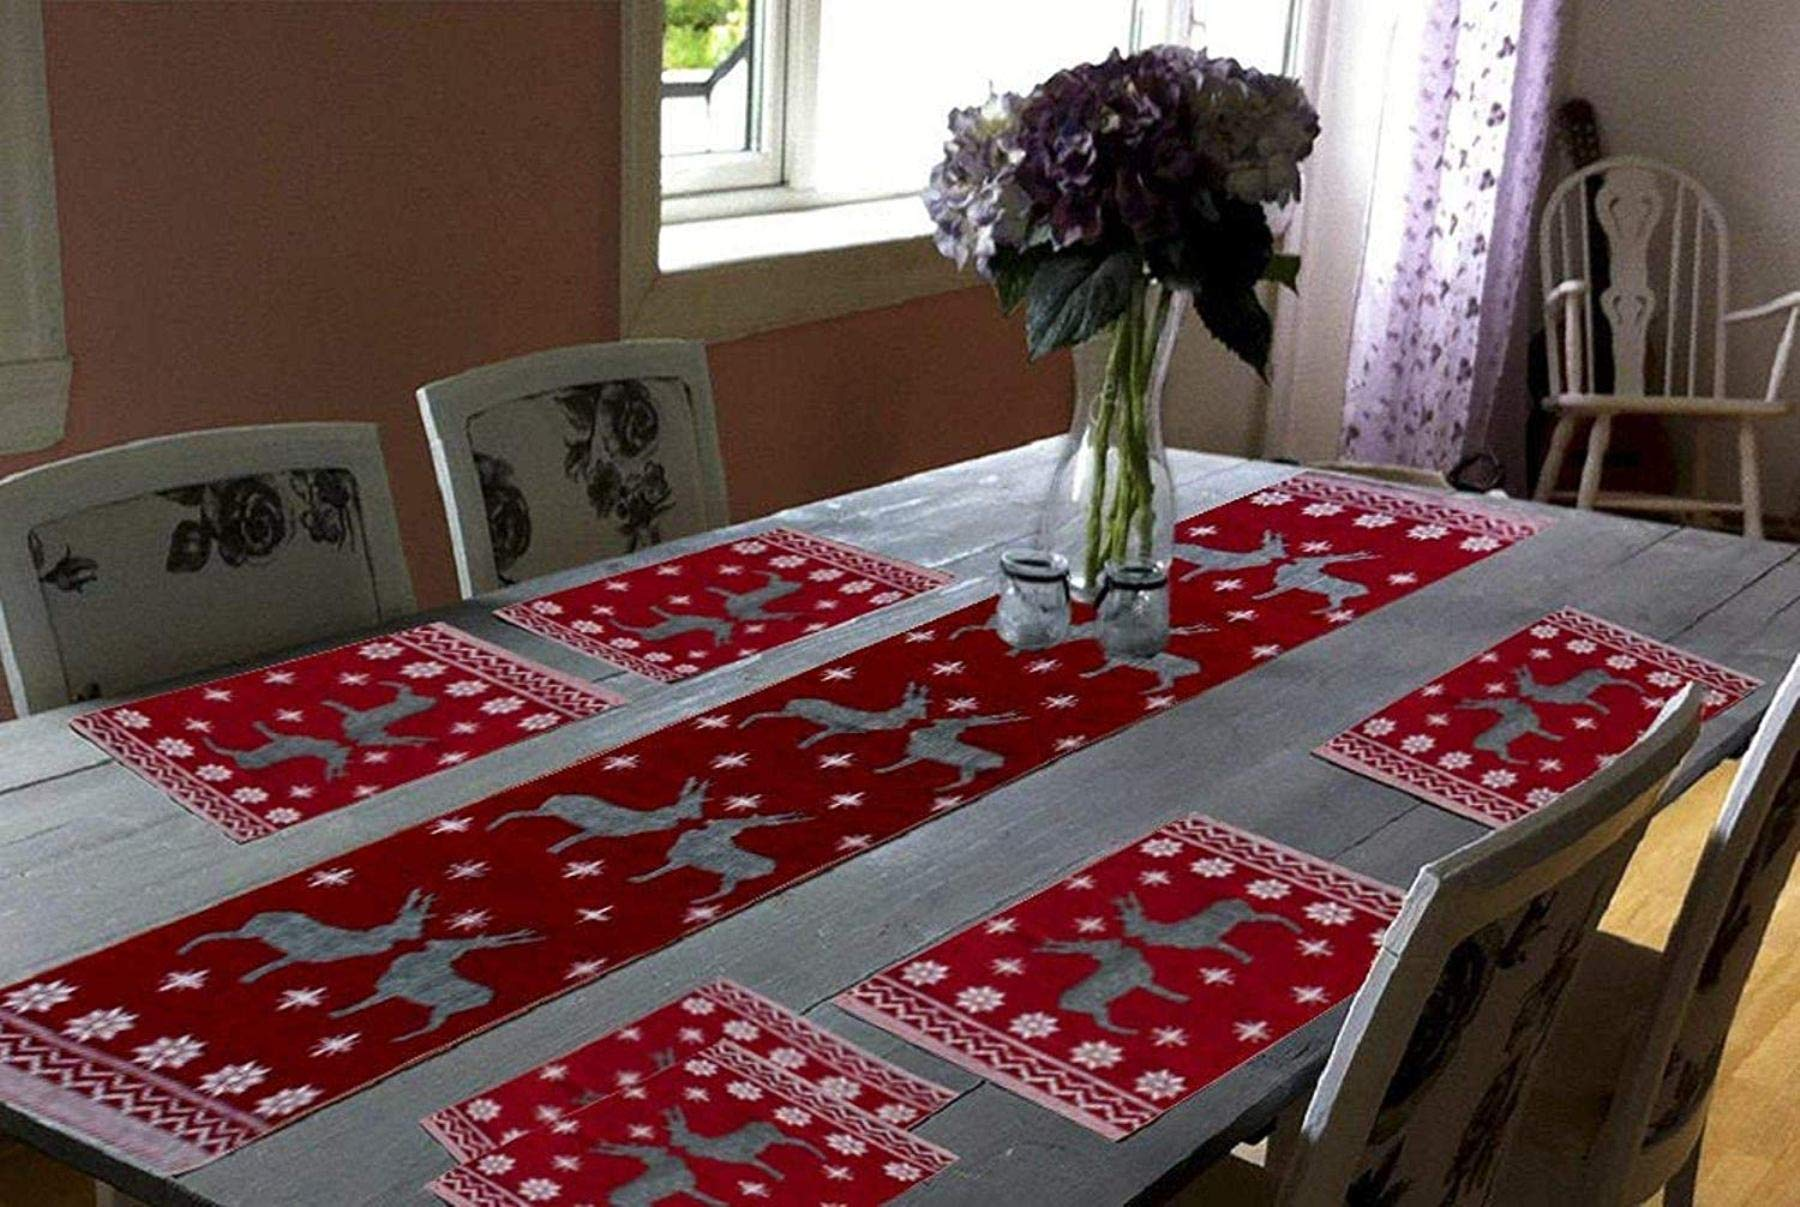 Galaxy Home Decor Cotton Dining Table With 6 Jacquard Mats With 1 Runner Maroon Set Of 7 Buy Online In Andorra At Andorra Desertcart Com Productid 104288192